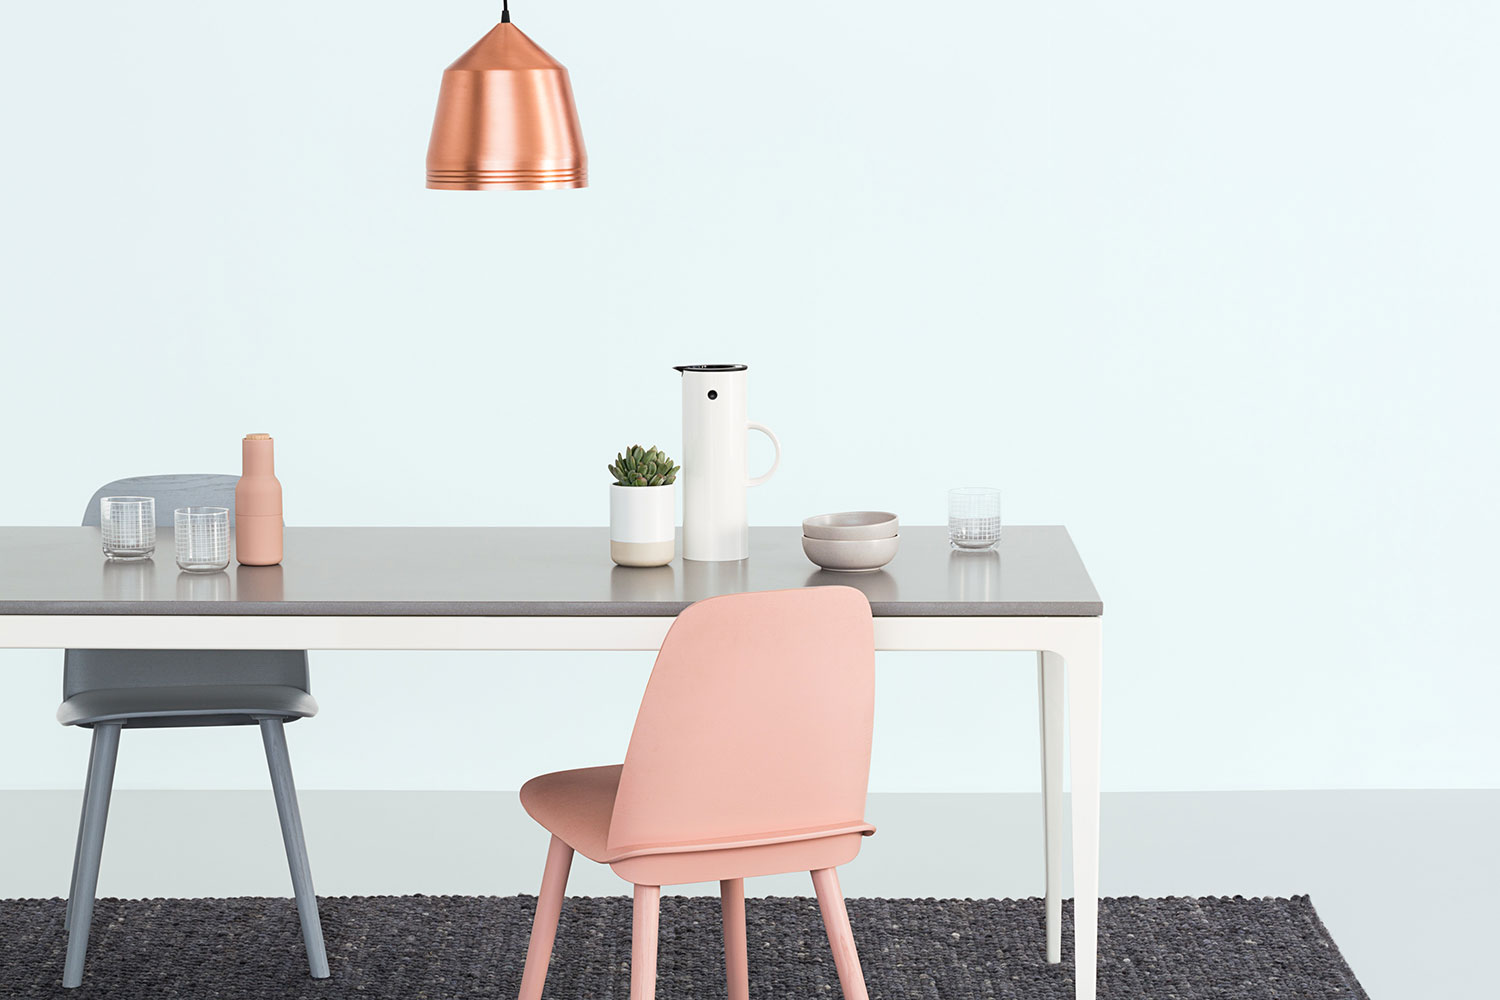 URBI Furniture dinig room table photograph by Sarah Anderson Photography